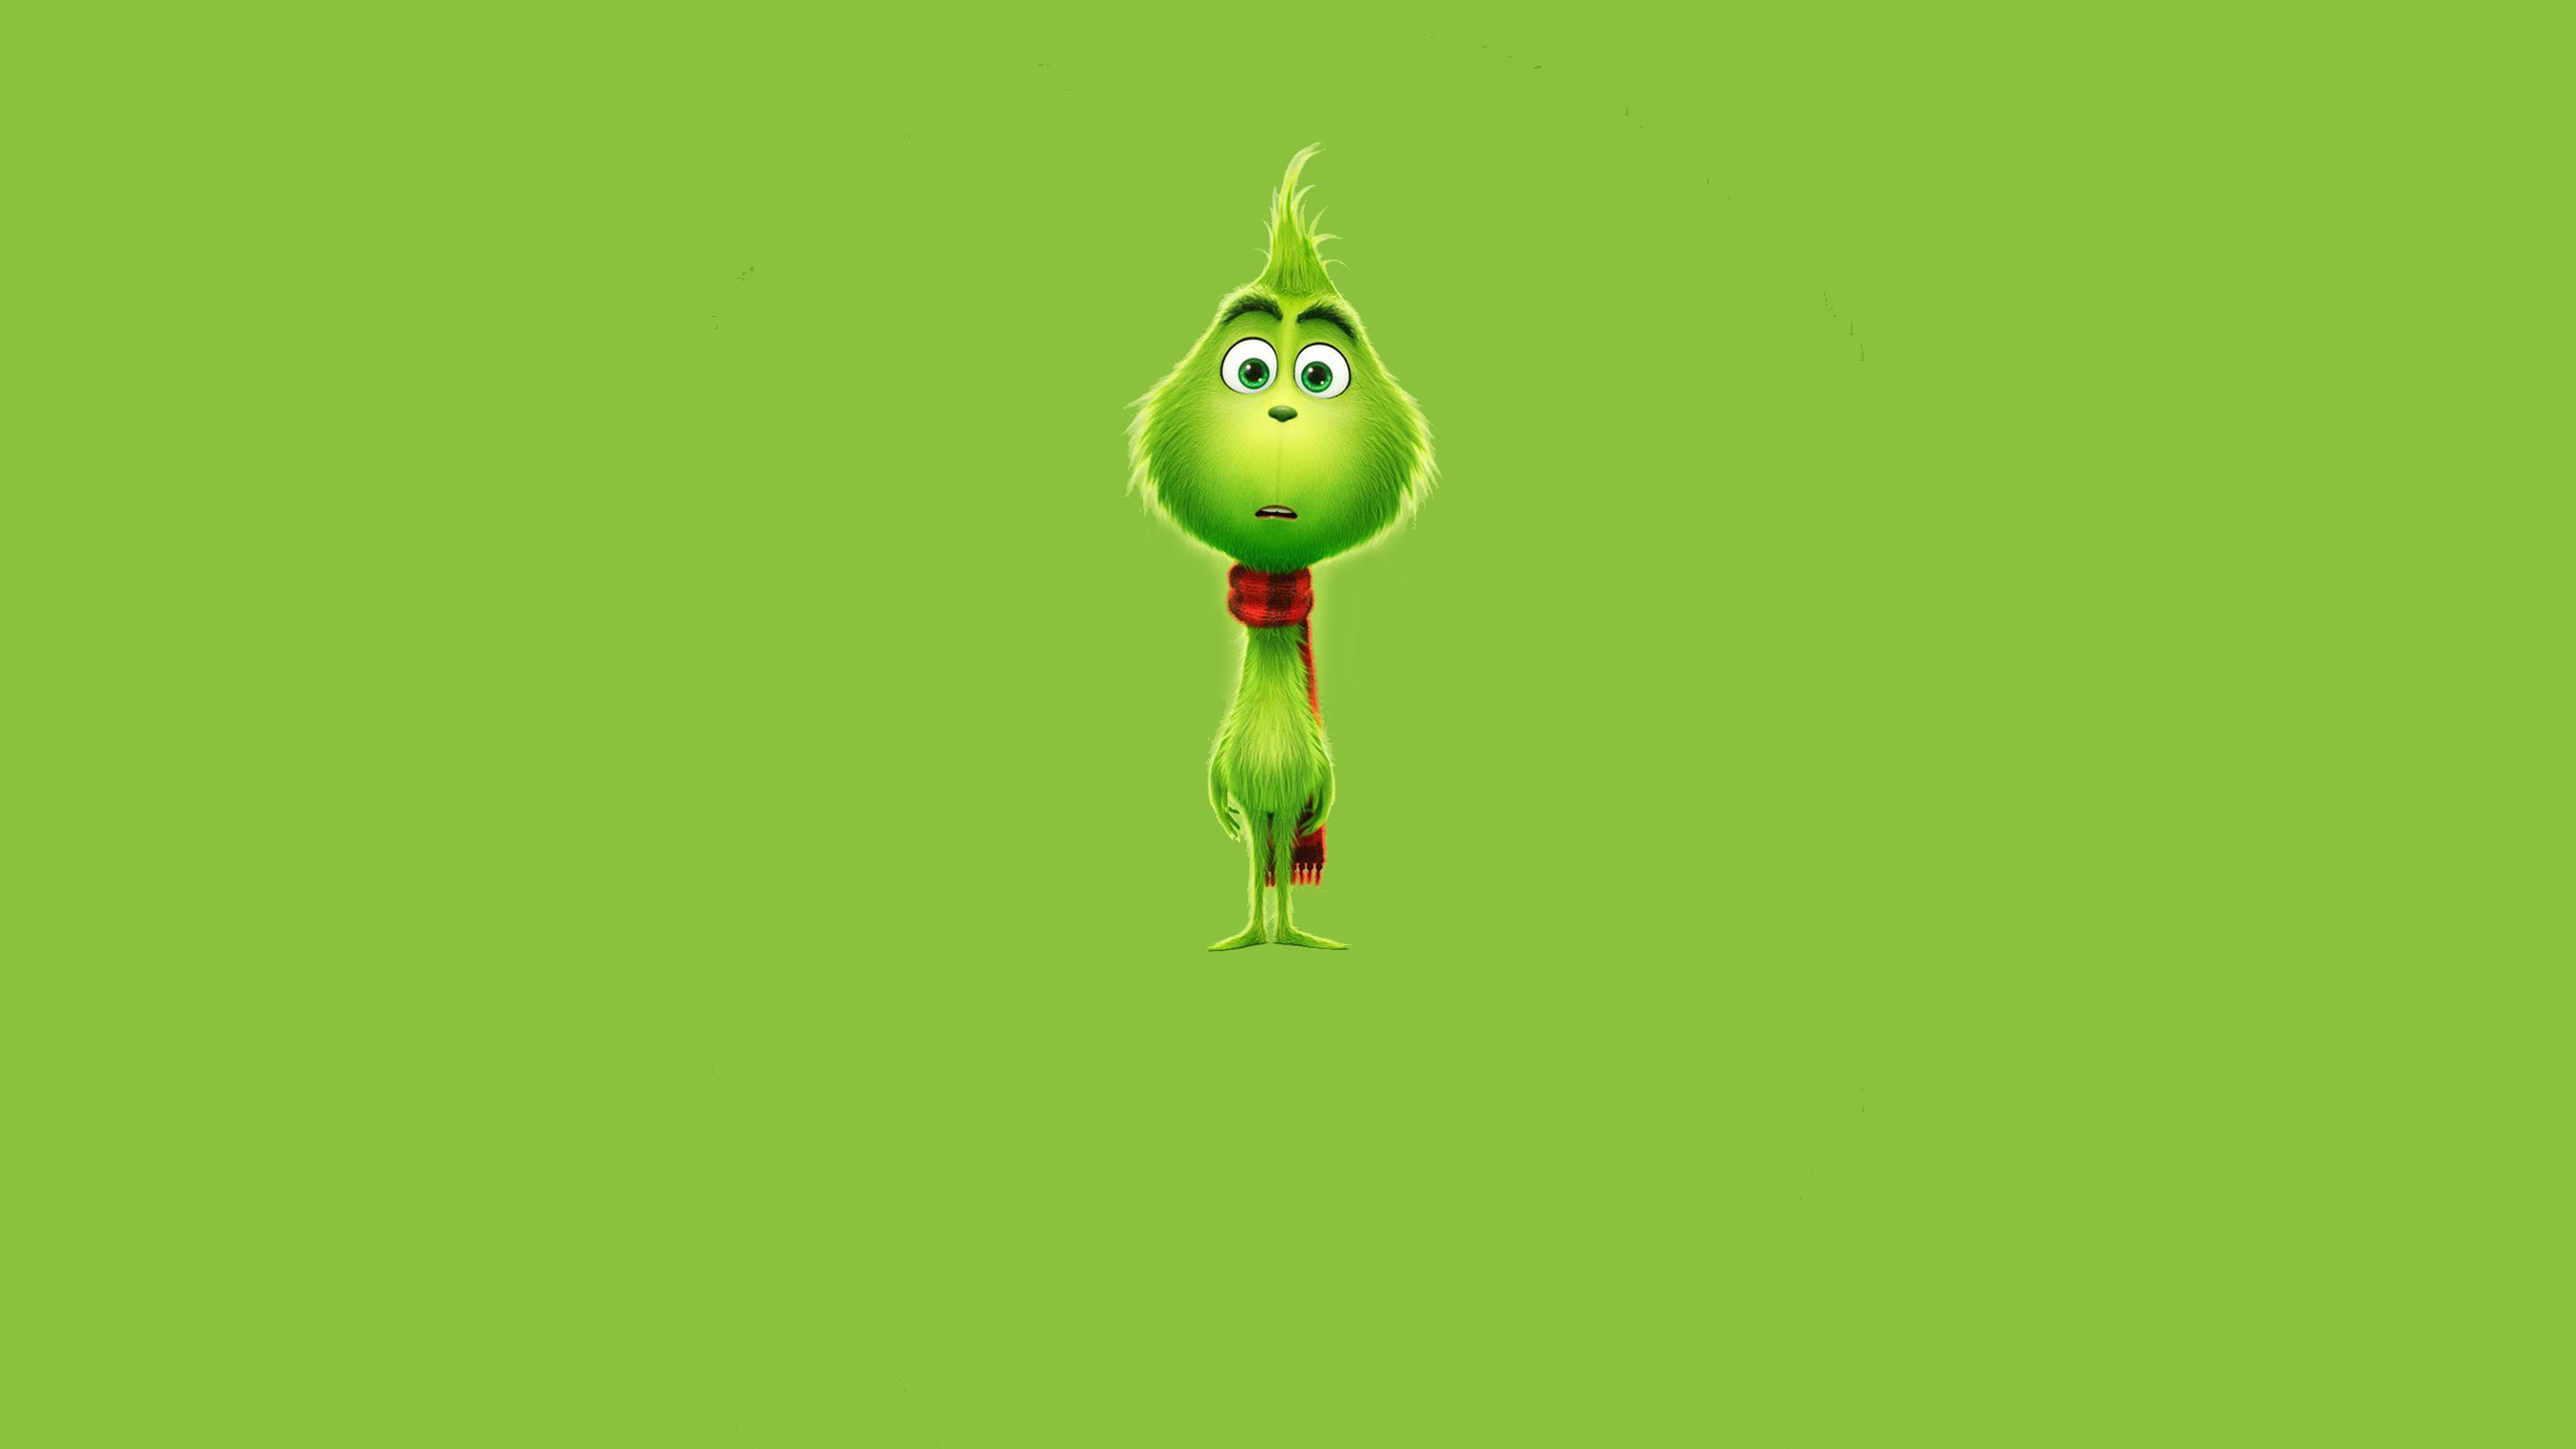 The Grinch 2018 Wallpapers 3840x2160